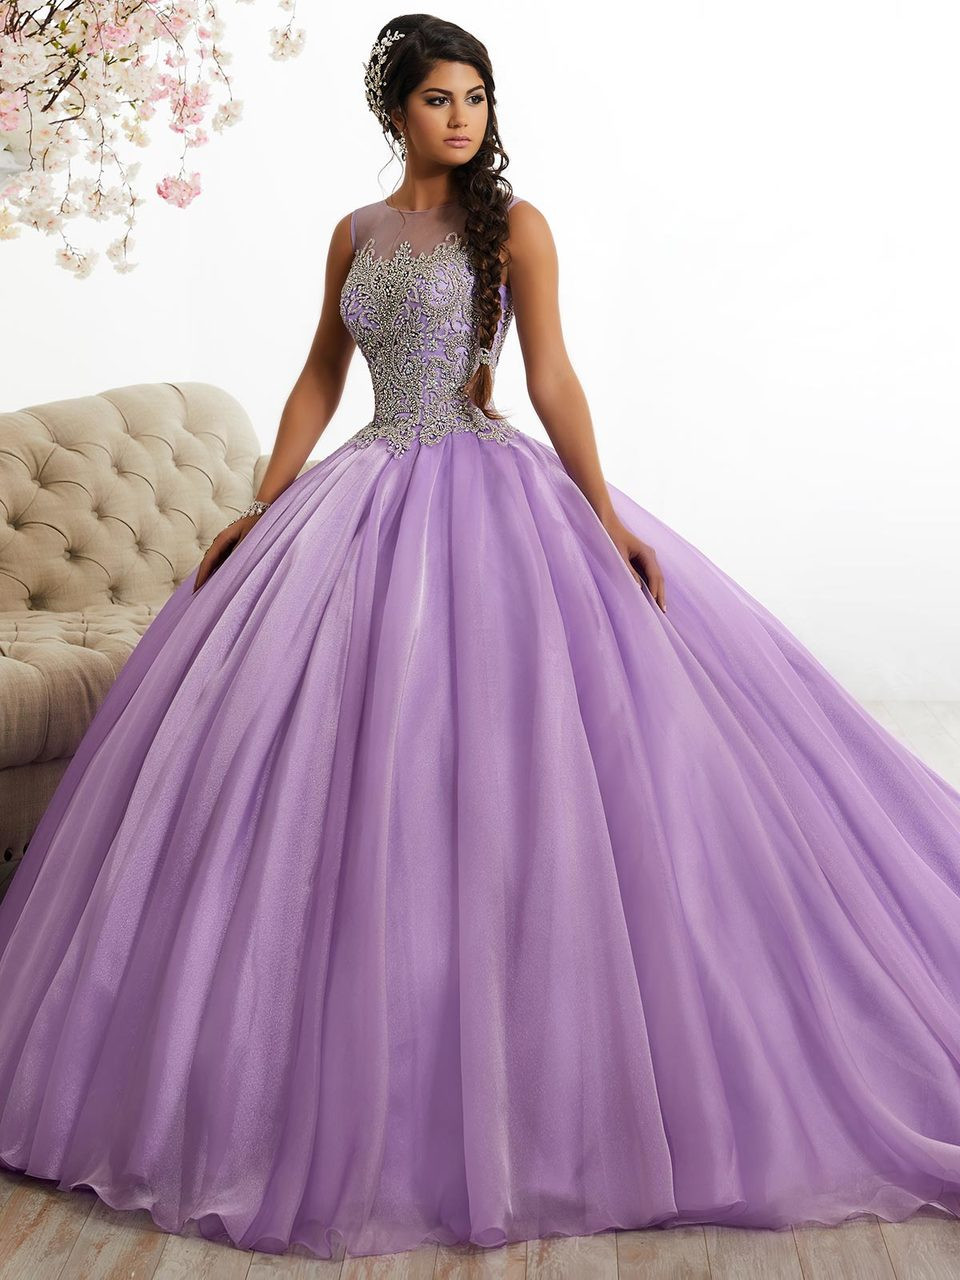 f8ec2bf6550 Organza Ball Gown Tiffany Quinceanera Dress 26885